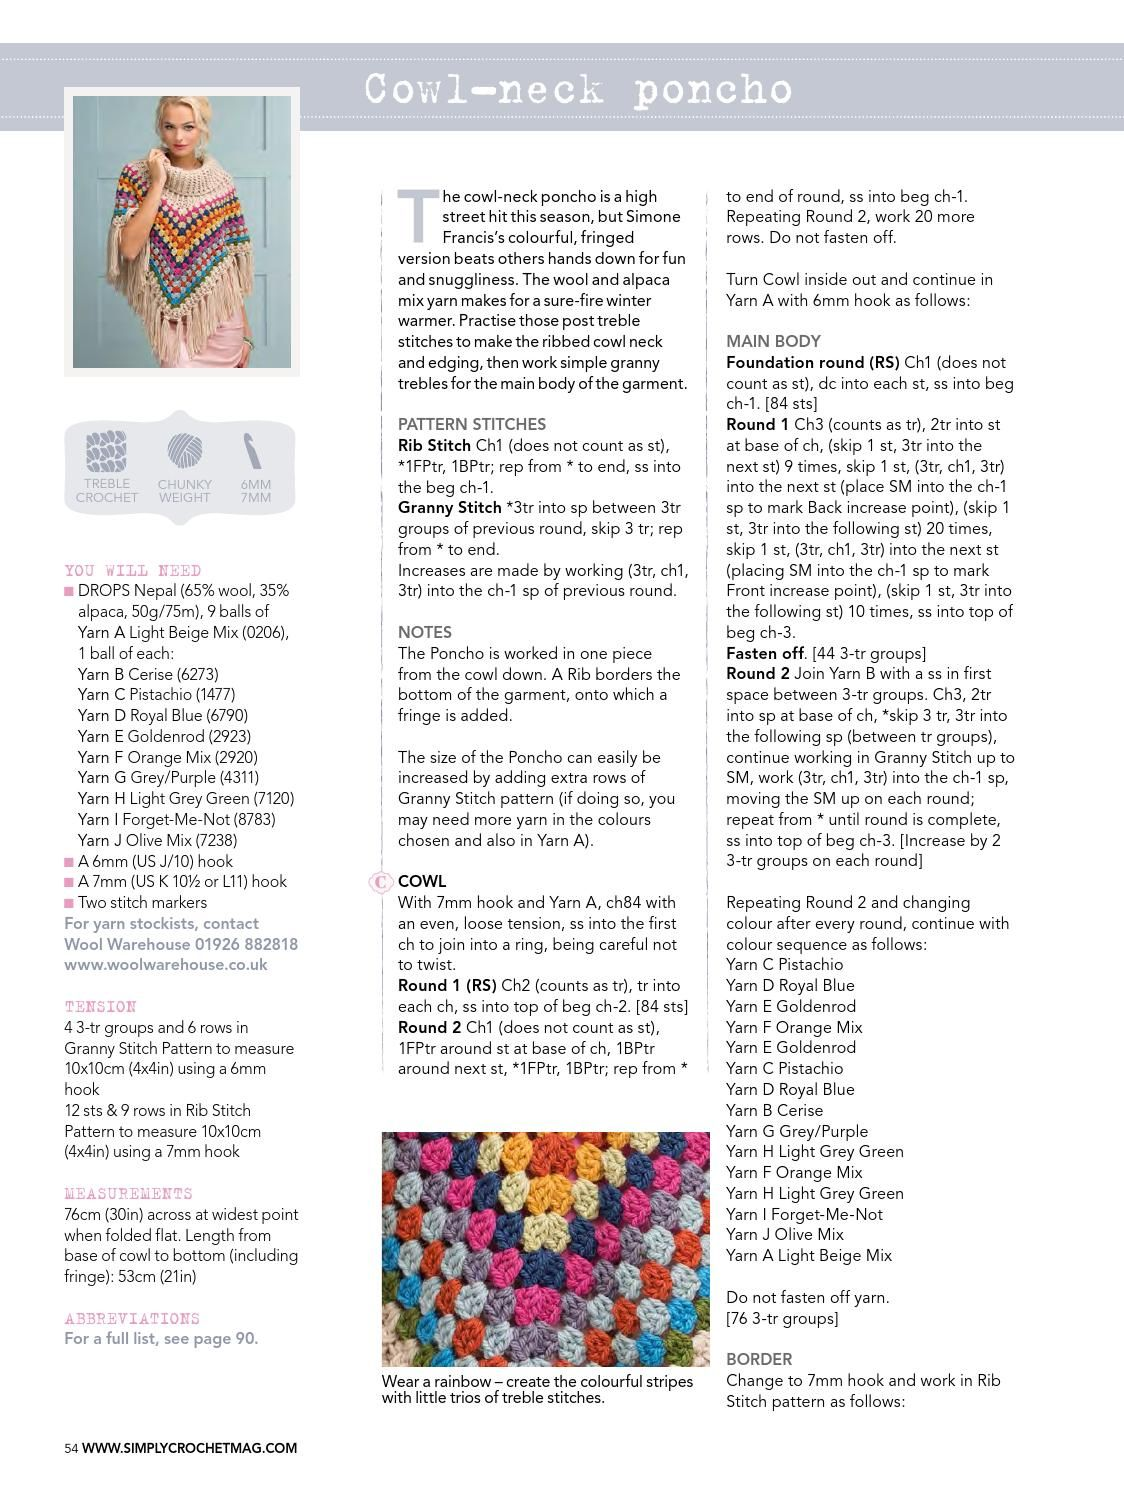 Simply crochet issue 25 december 2014 haakwerken pinterest simply crochet issue 25 december 2014 bankloansurffo Images